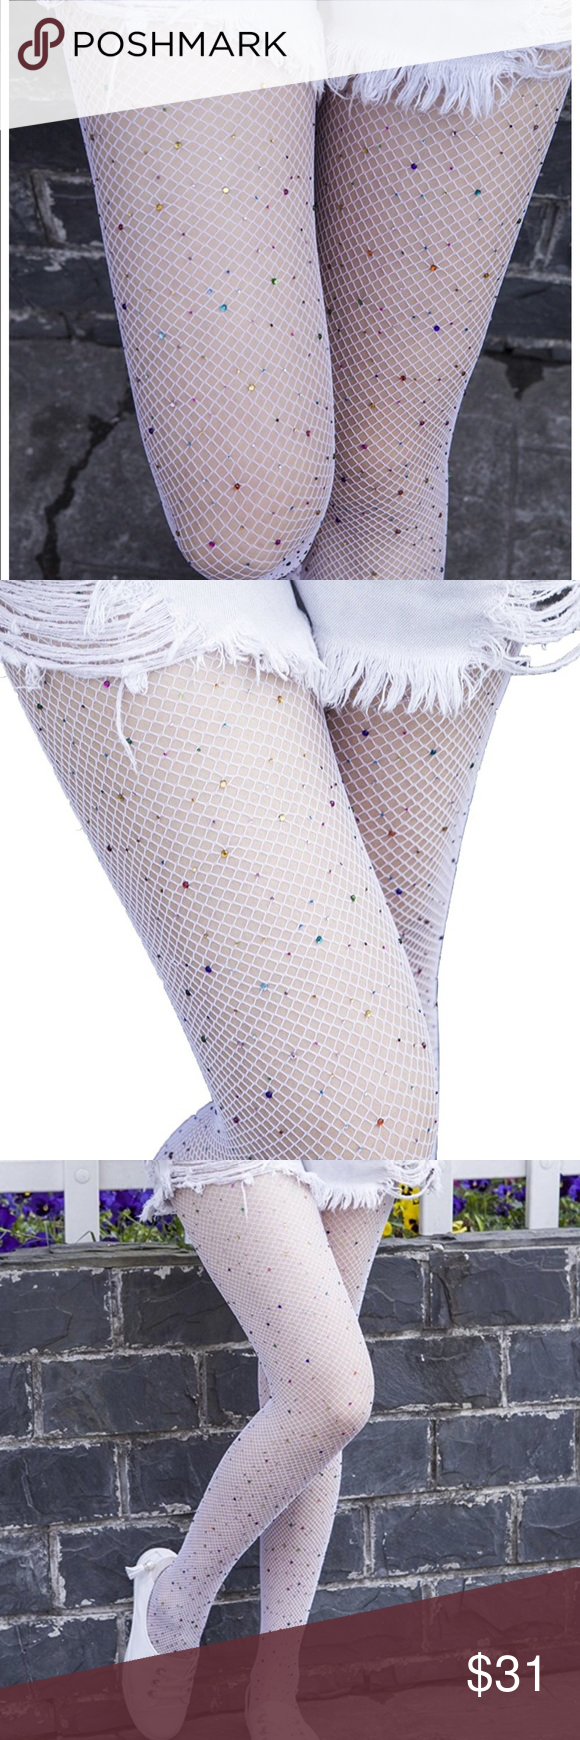 03a9f79975e Embellished - colored crystal white fishnets OSA Super cute ...